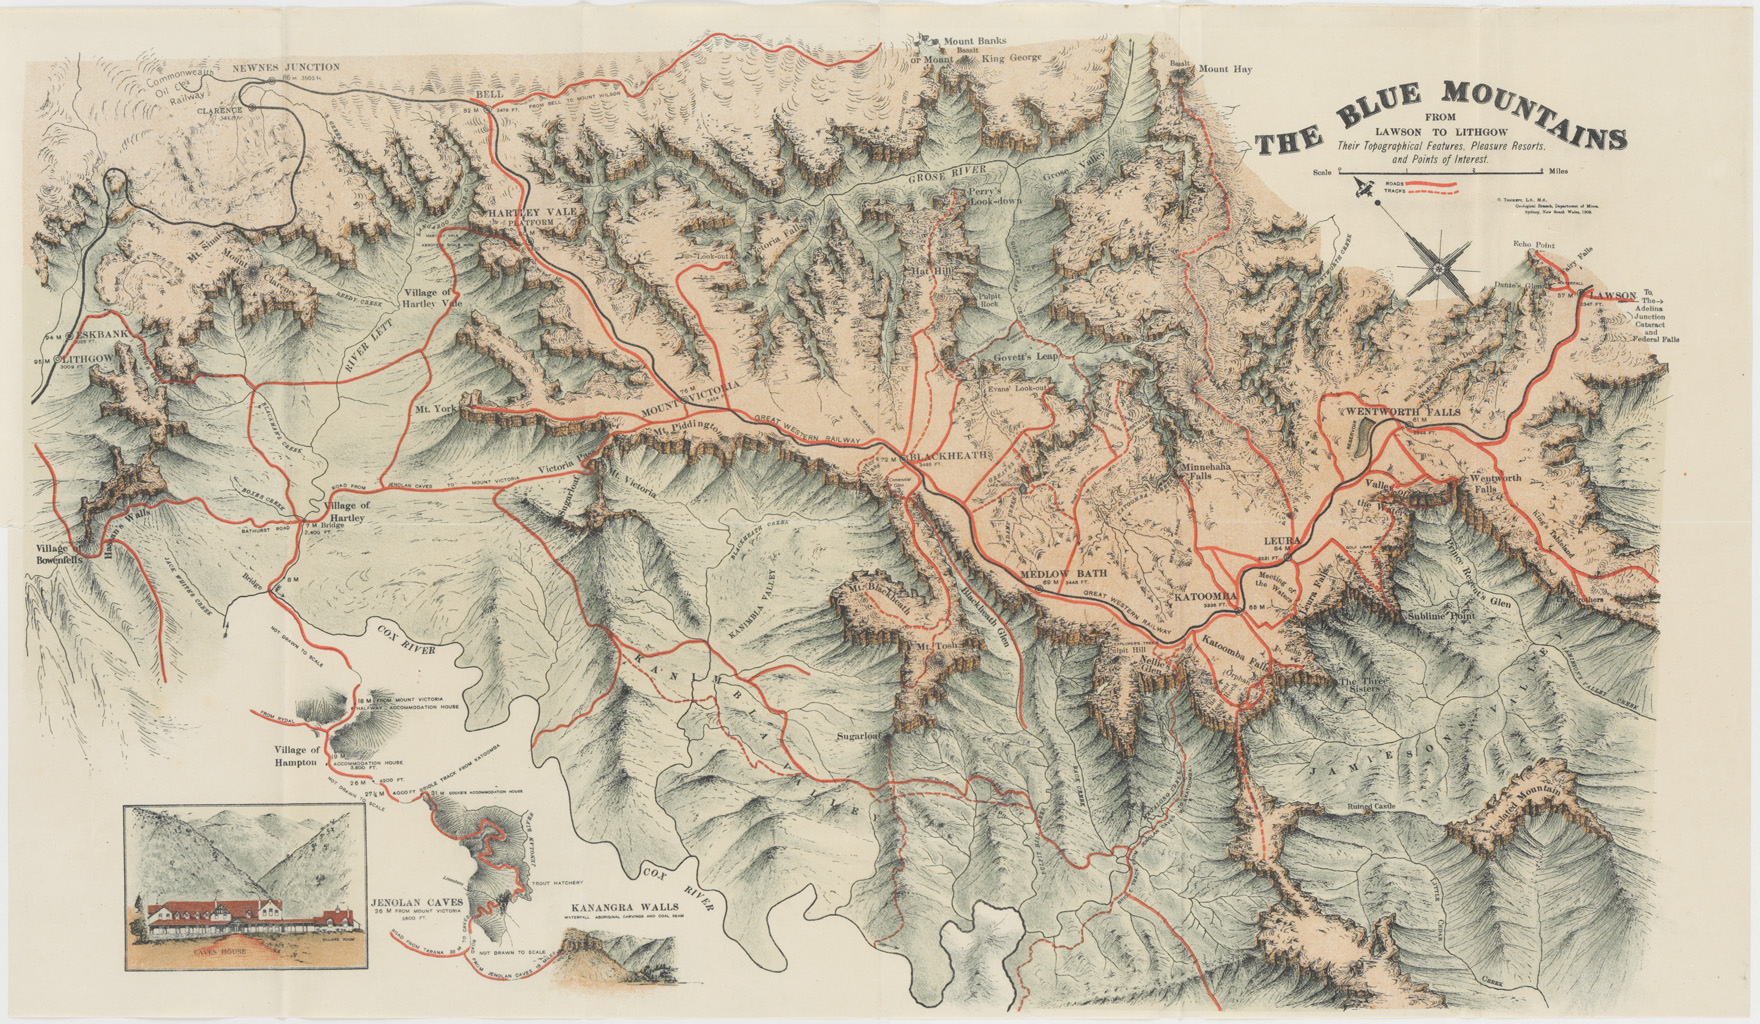 Westward, Ho! A trip over the Blue Mountains on